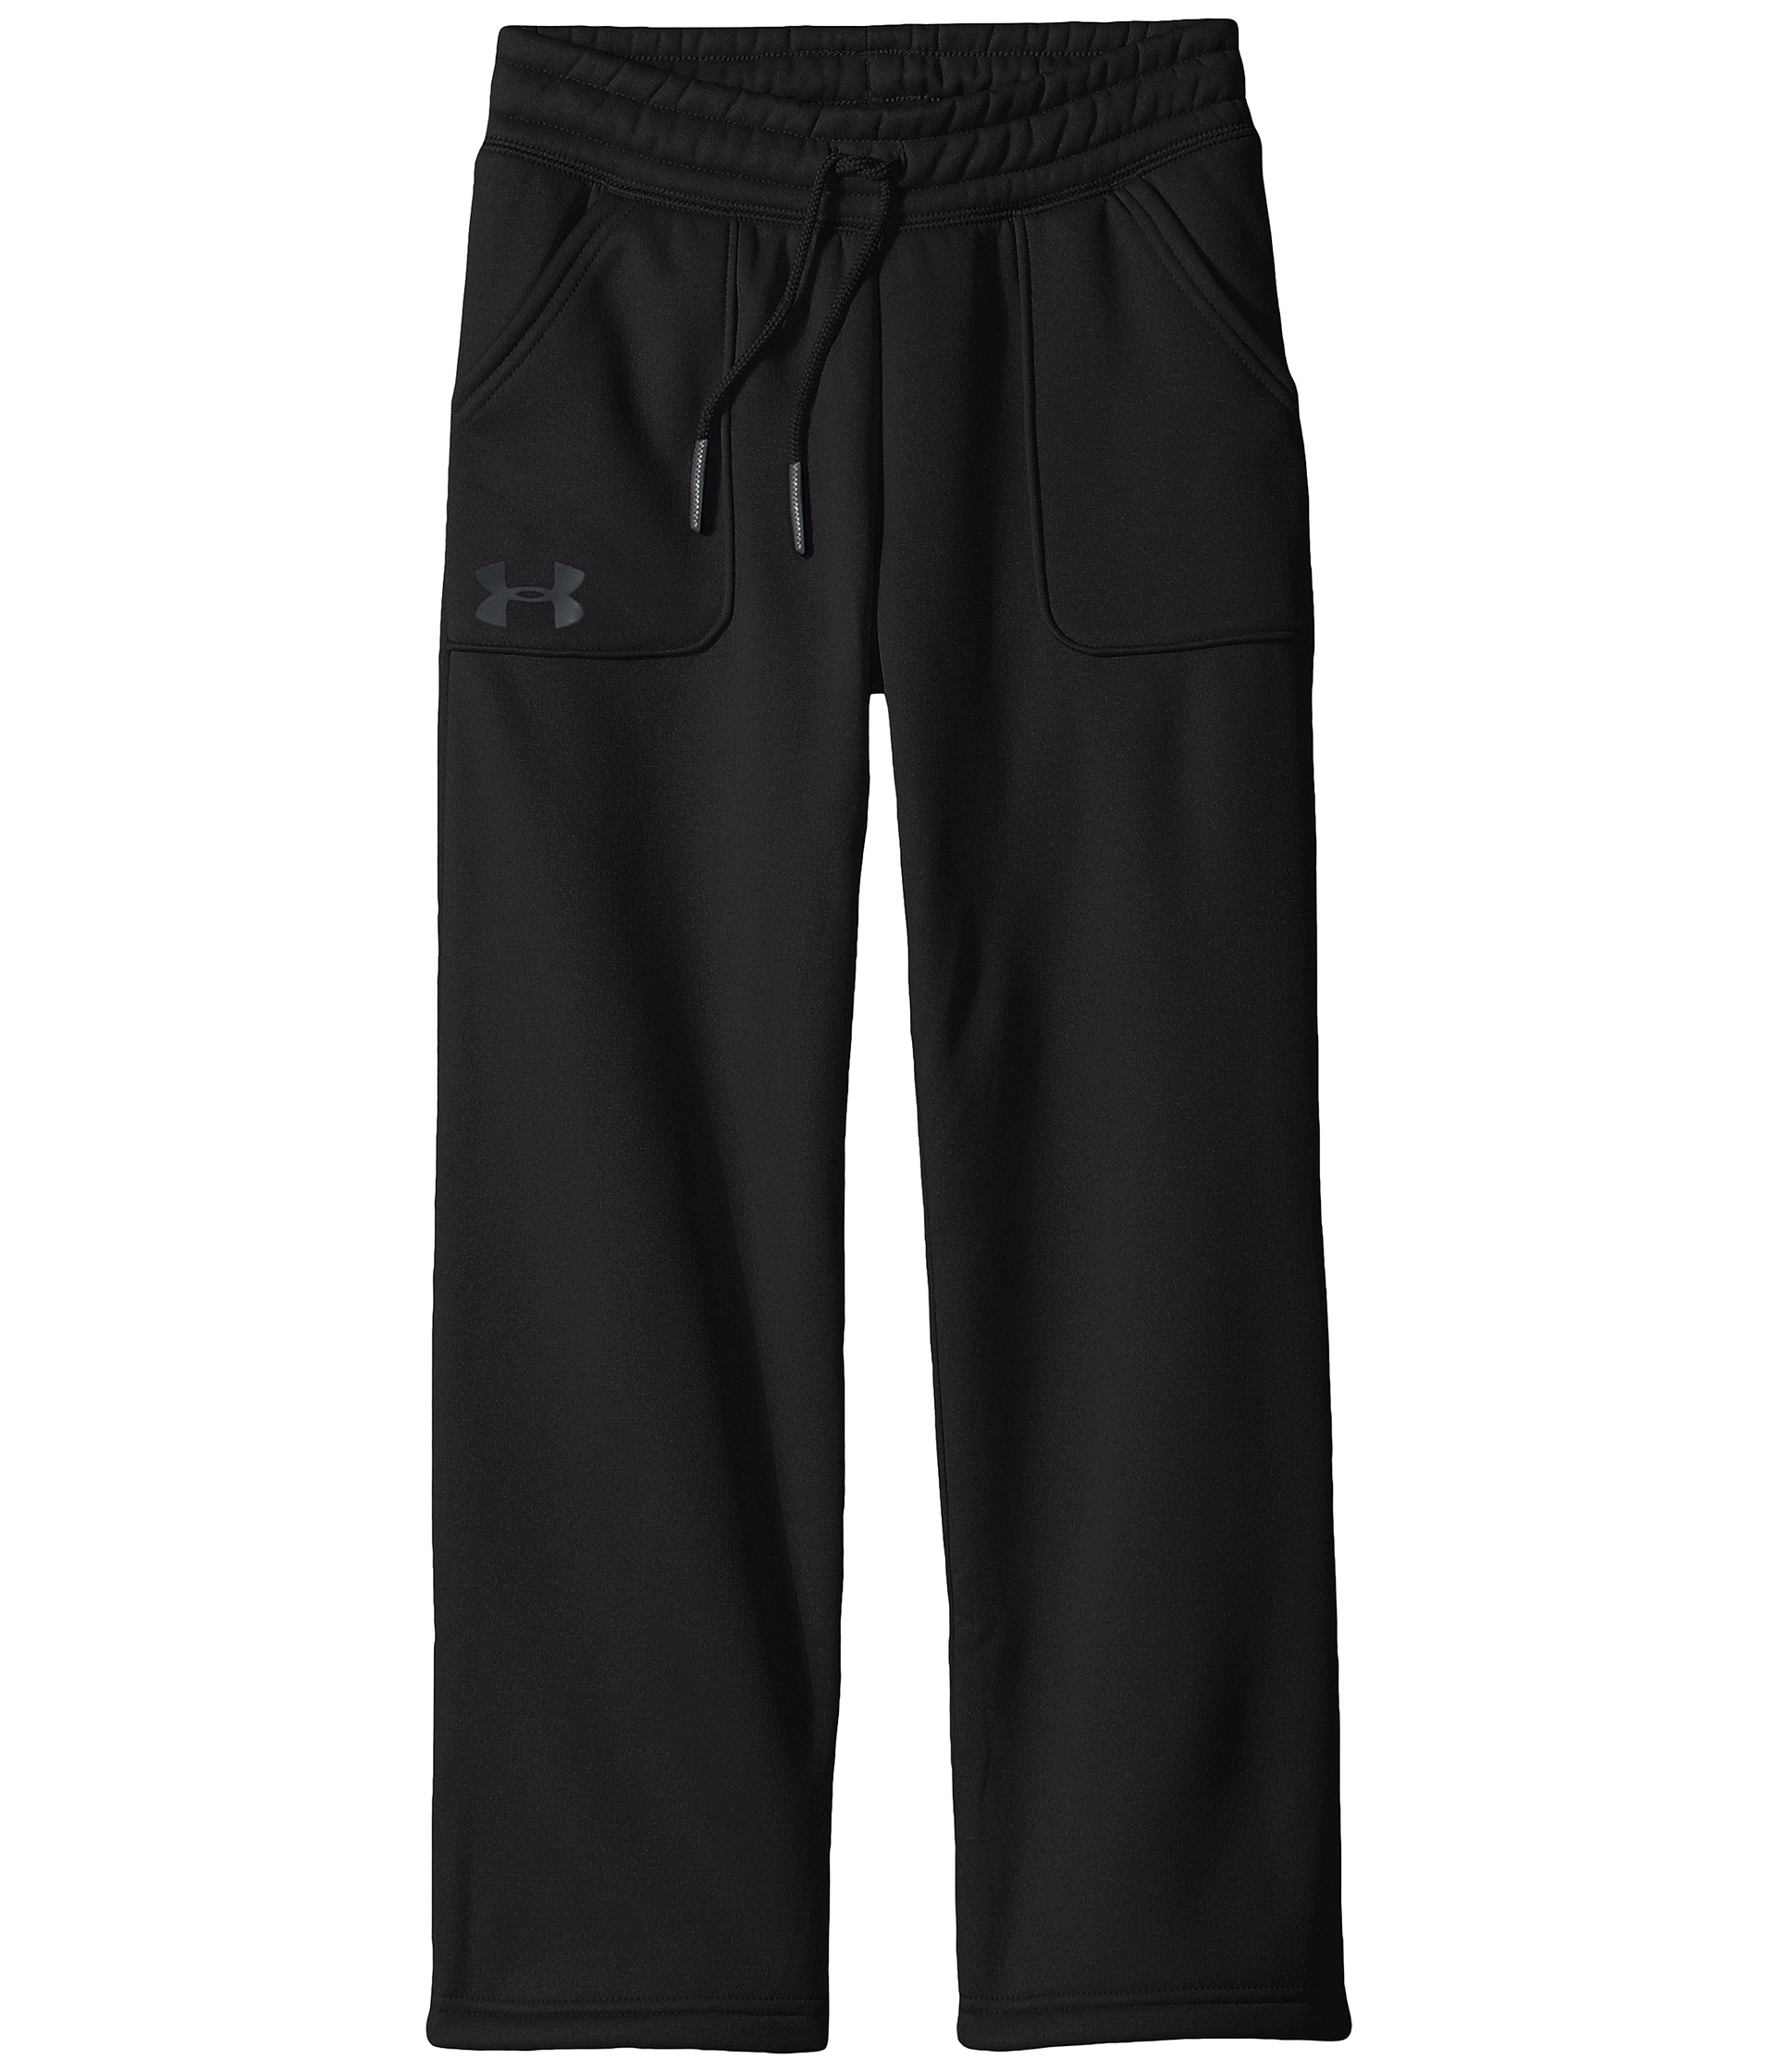 under armour storm pants silver men cheap   OFF42% The Largest ... 602d0e80c0d2f